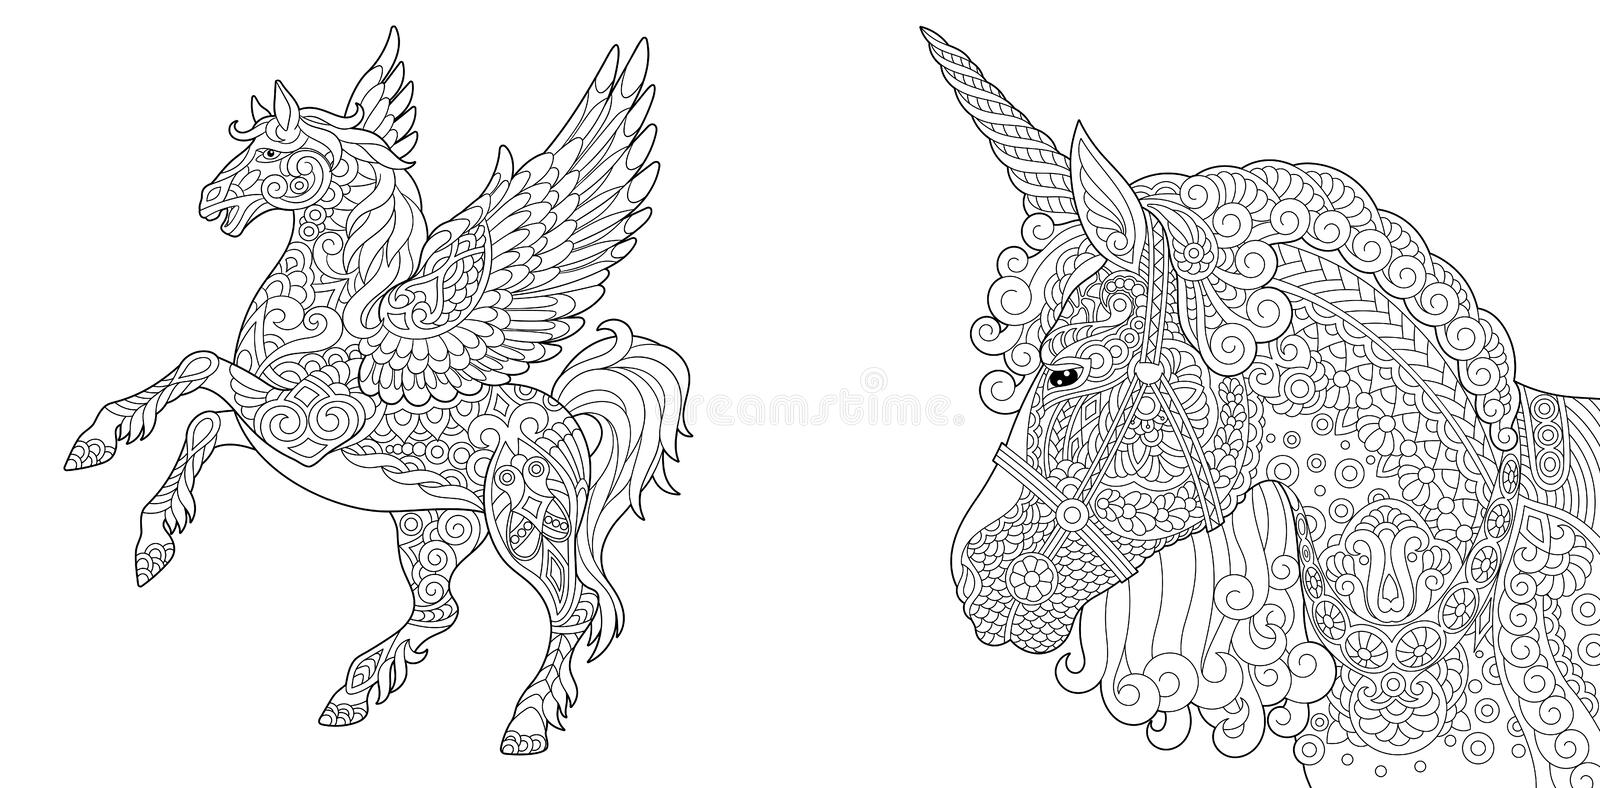 Coloring pages with unicorn and pegasus stock illustration